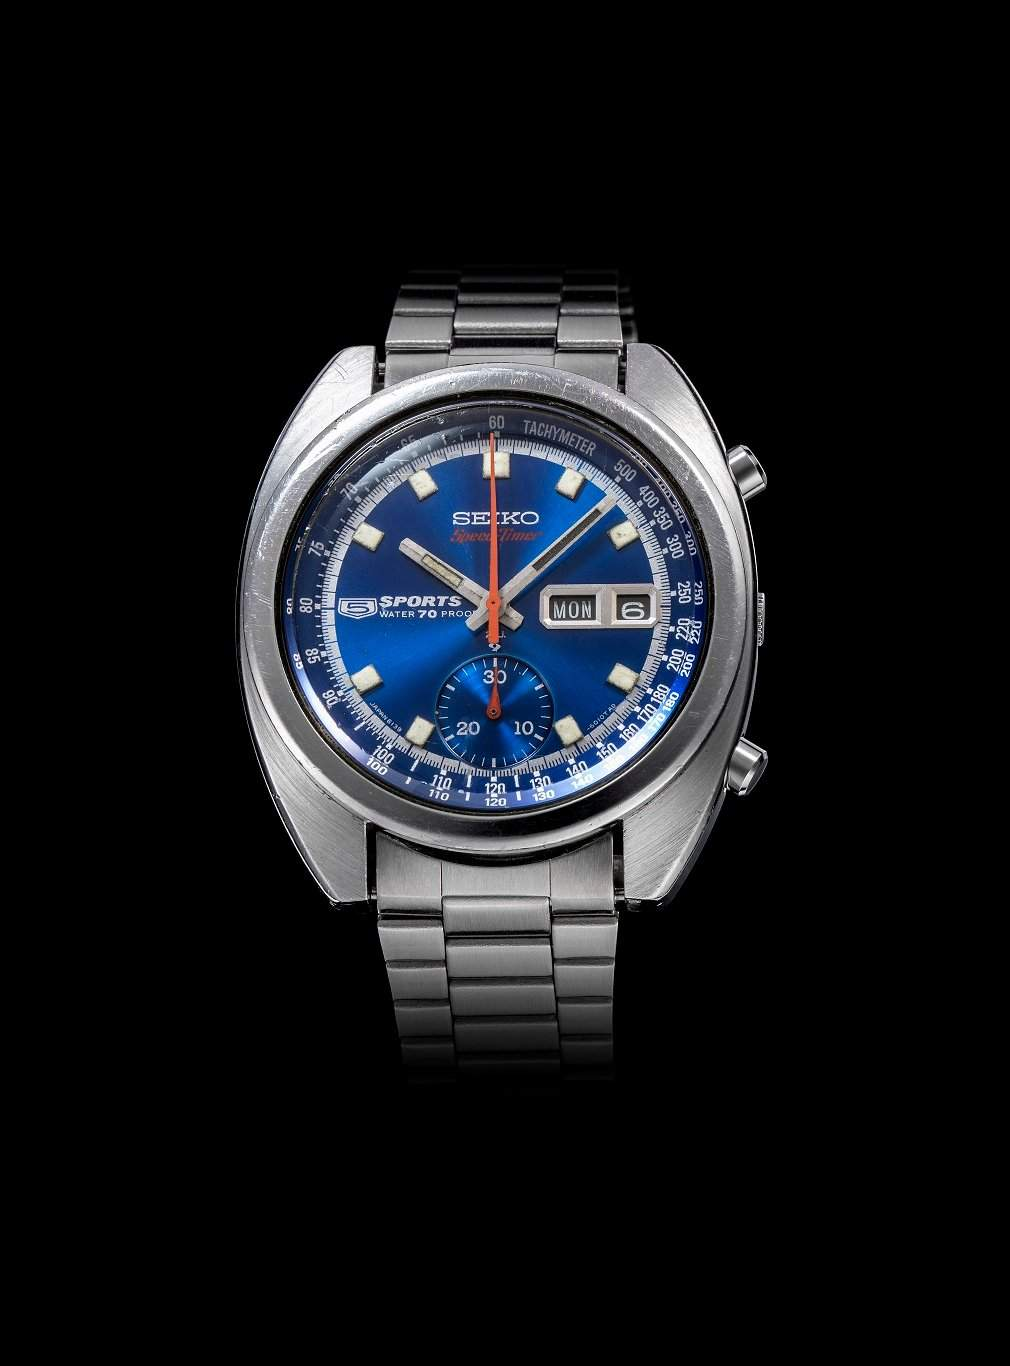 The Seiko 5 Sports SPEEDTIMER: The world's first watch with an automatic chronograph movement debuted in May 1969.